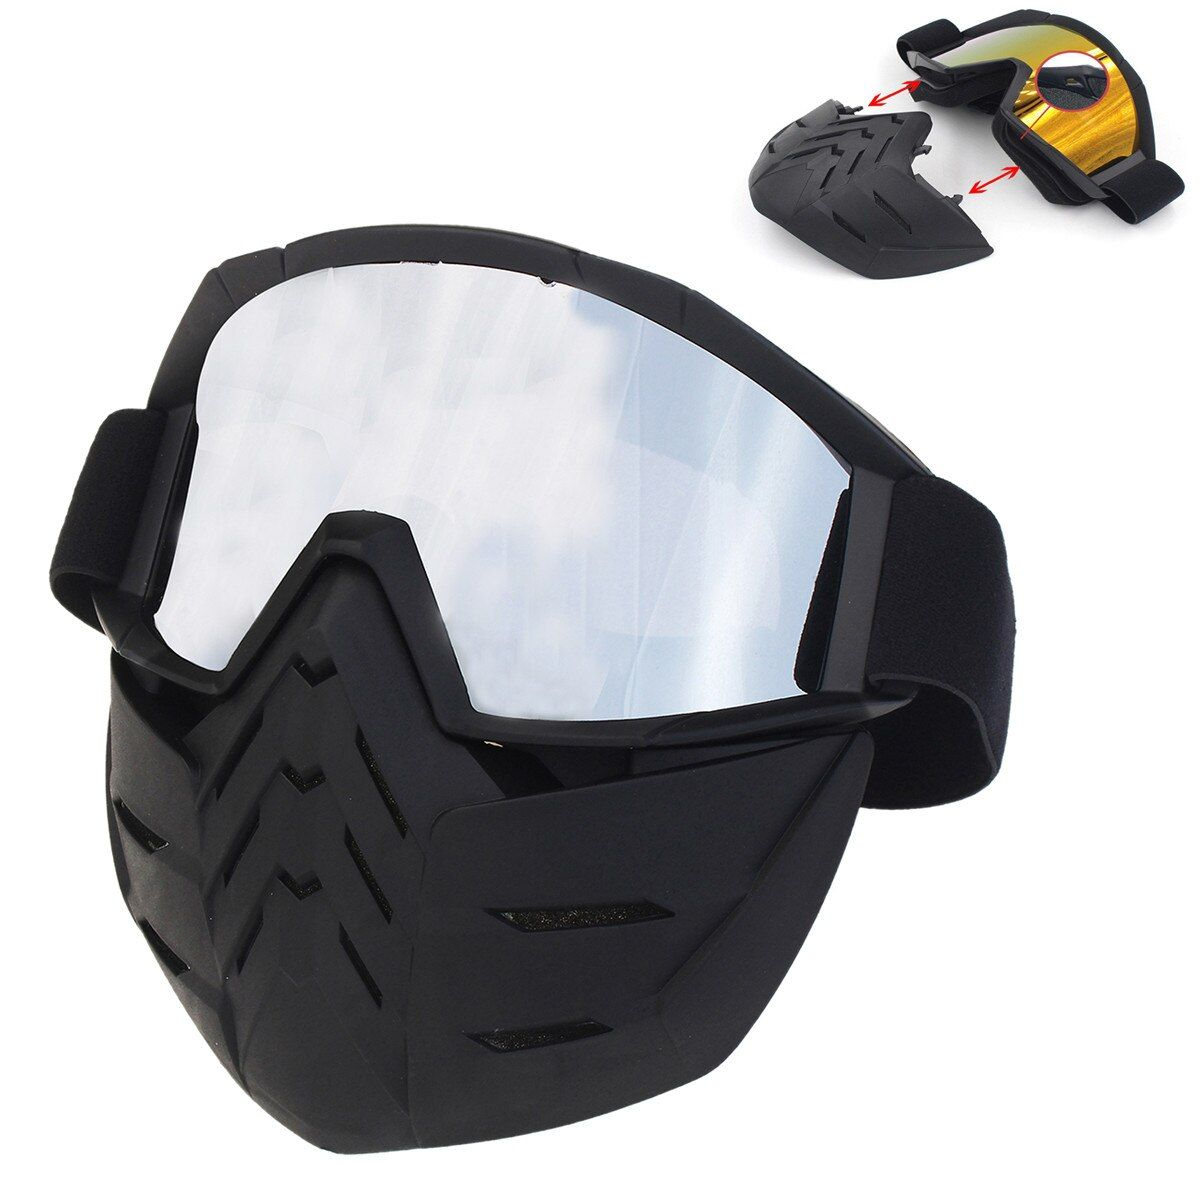 Motorcycle Detachable Face Mask Glasses PC Lens Cycling Bike Ski Goggles Motorbike Face Mask For Motorcycle Helmet